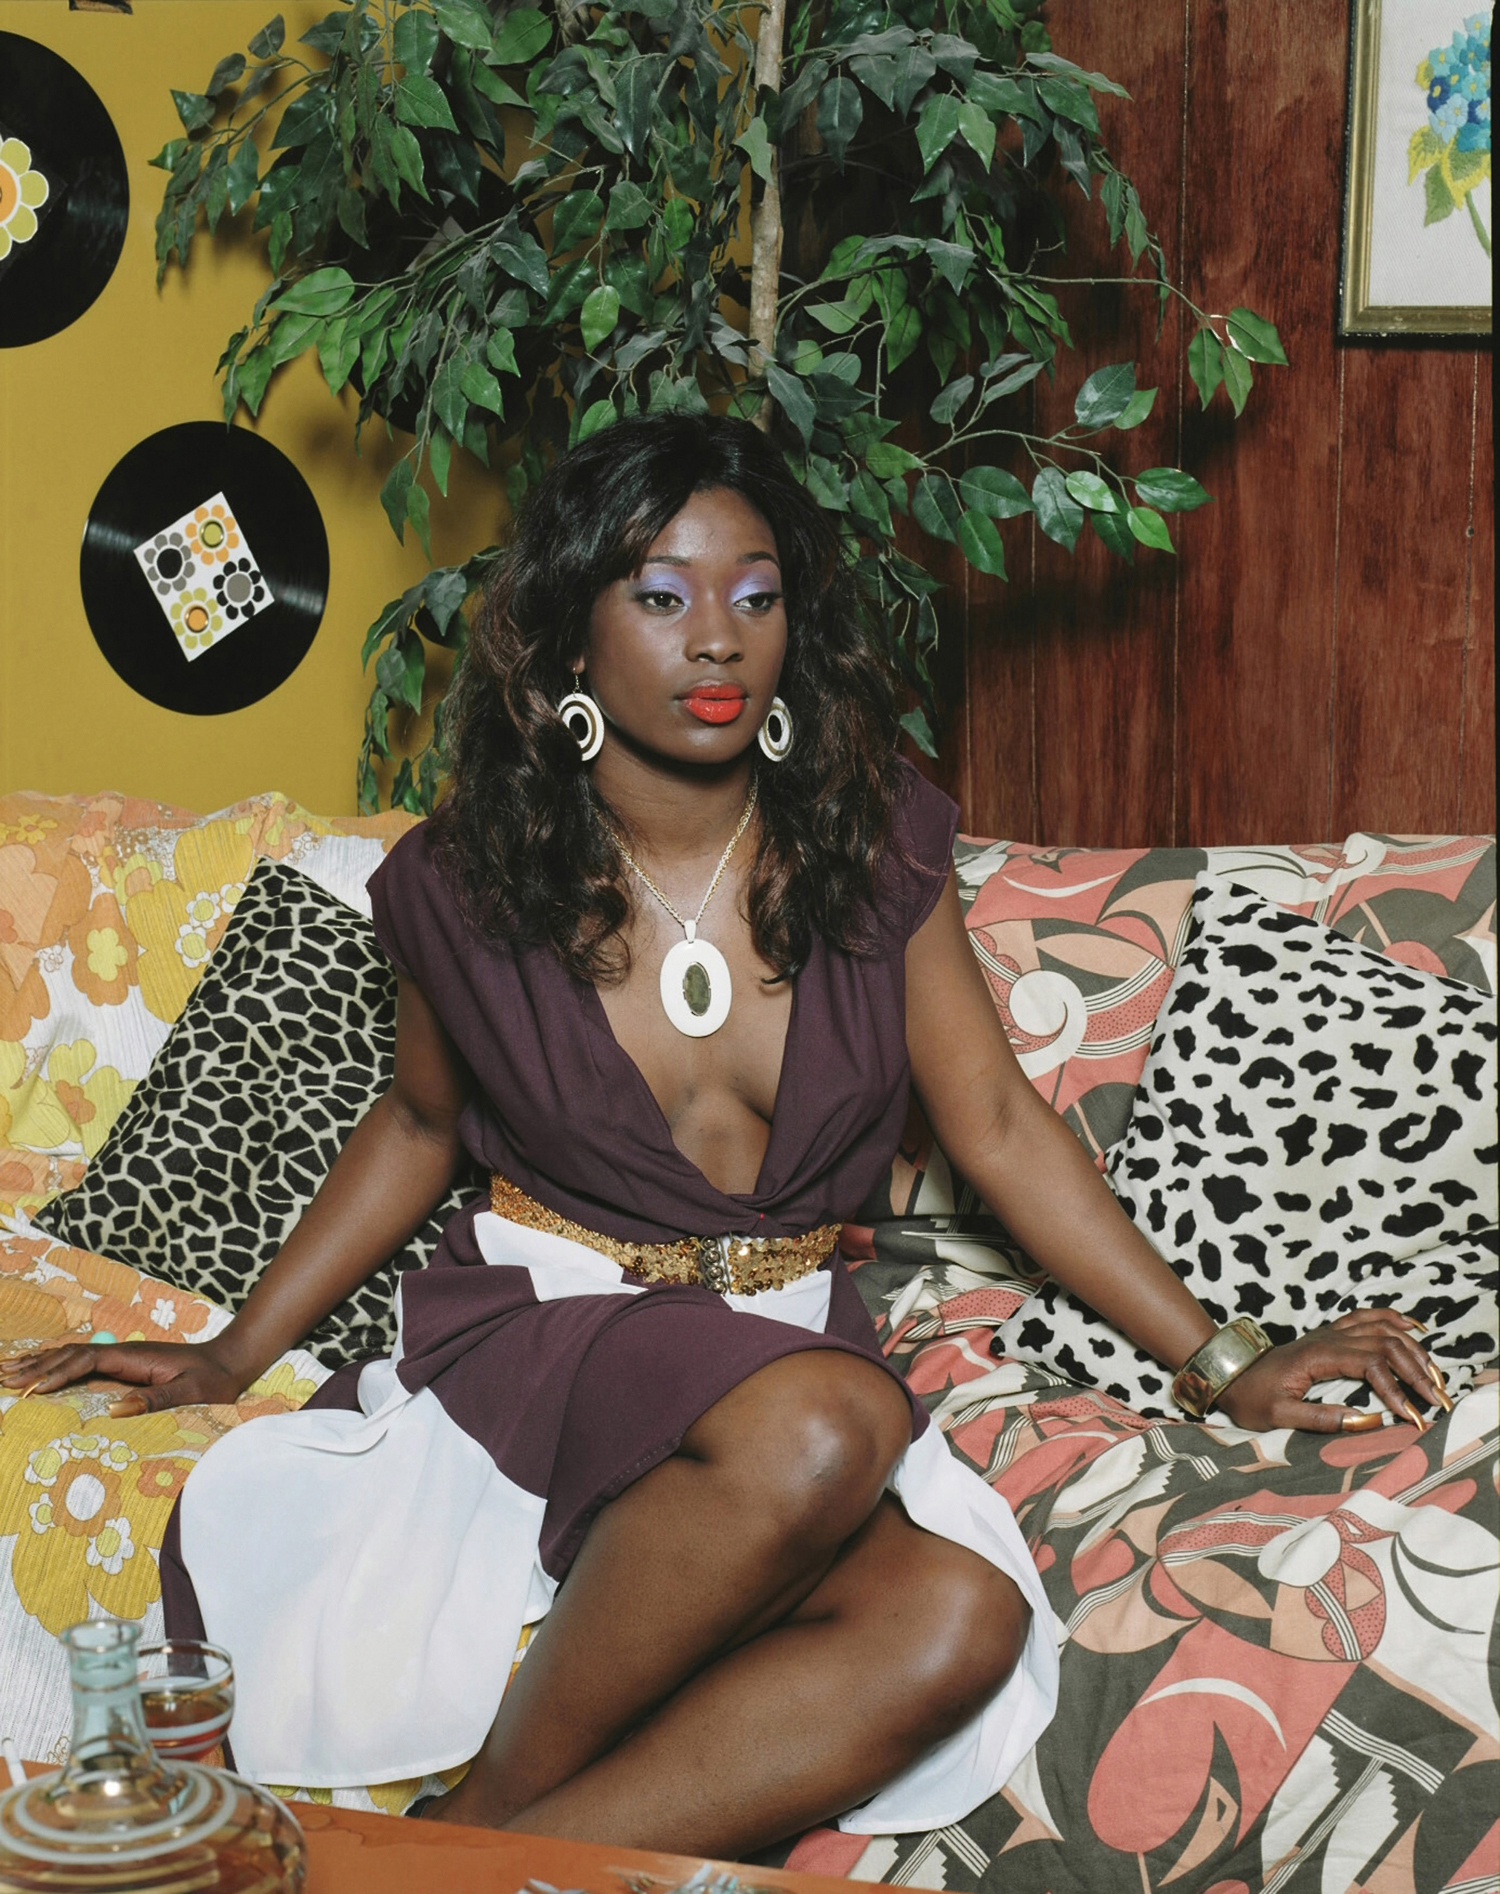 Mickalene Thomas, Portrait of Qusuquzah, 2008. C-print, 70¼ x 56¼ inches. Courtesy of the artist, Lehmann Maupin, New York and Hong Kong, and Artists Rights Society (ARS), New York